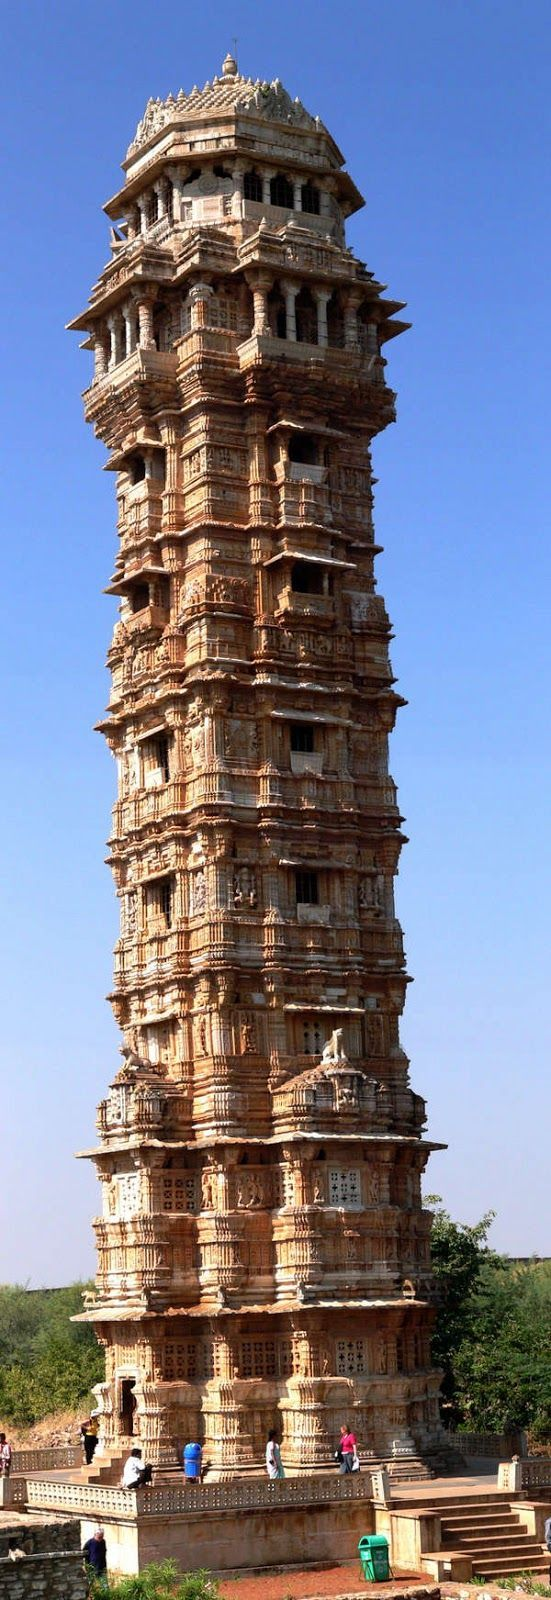 'Vijay Stambha' [Hindi: विजय स्तम्भ; English:Tower-of-Victory] in the Chittorgarh Fort, Chittorgarh, Rajasthan, India. is the piece-de-resistance of Chittorgarh, and was constructed by Mewar king Rana Kumbha between 1442 AD and 1449 AD to commemorate his victory over the combined armies of Malwa and Gujarat led by Mahmud Khilji. Dedicated to Lord Vishnu, this 37.19 m high 9-storied tower is one of the most remarkable in India, and is built partly of red sand-stone and partly of white marble.